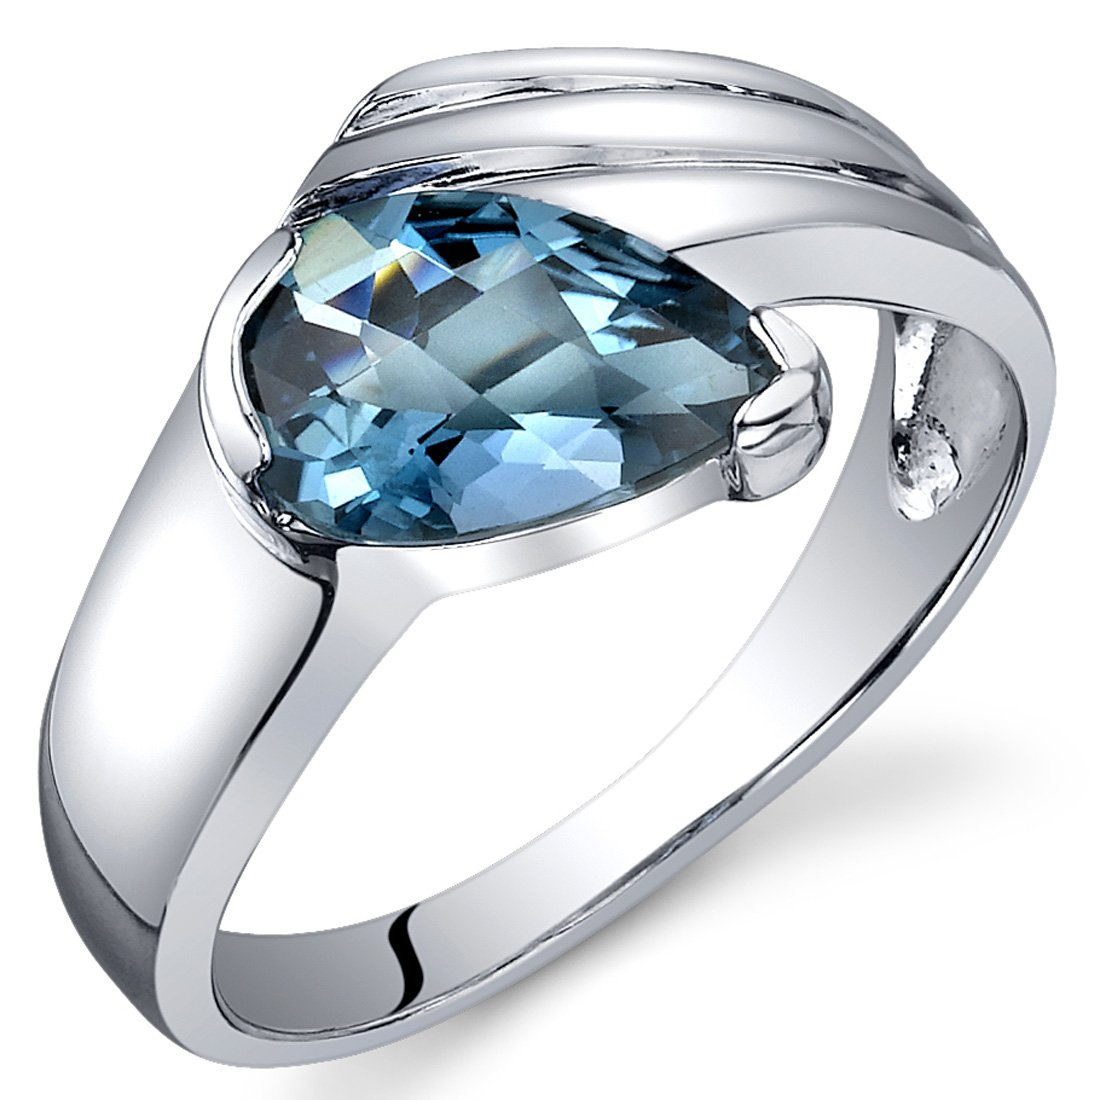 London Blue Topaz Ring Sterling Silver Rhodium Nickel Finish Pear Shape 1.50 Carats Sizes 5 to 9